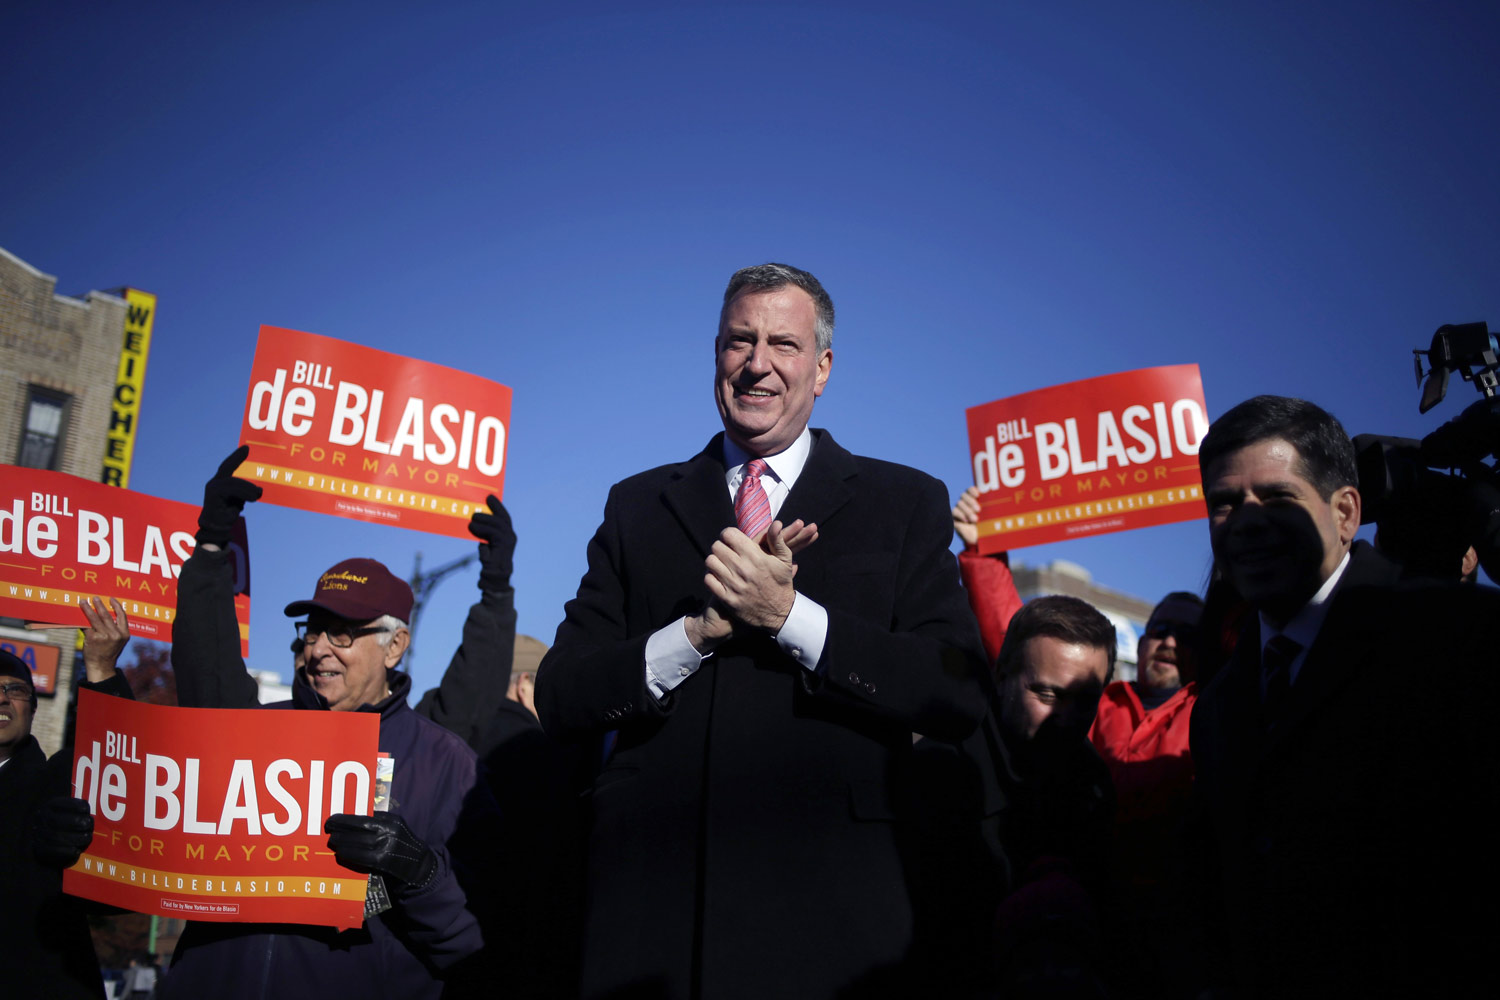 The-Zeitgeist-Tracked-Down-Bill-de-Blasio